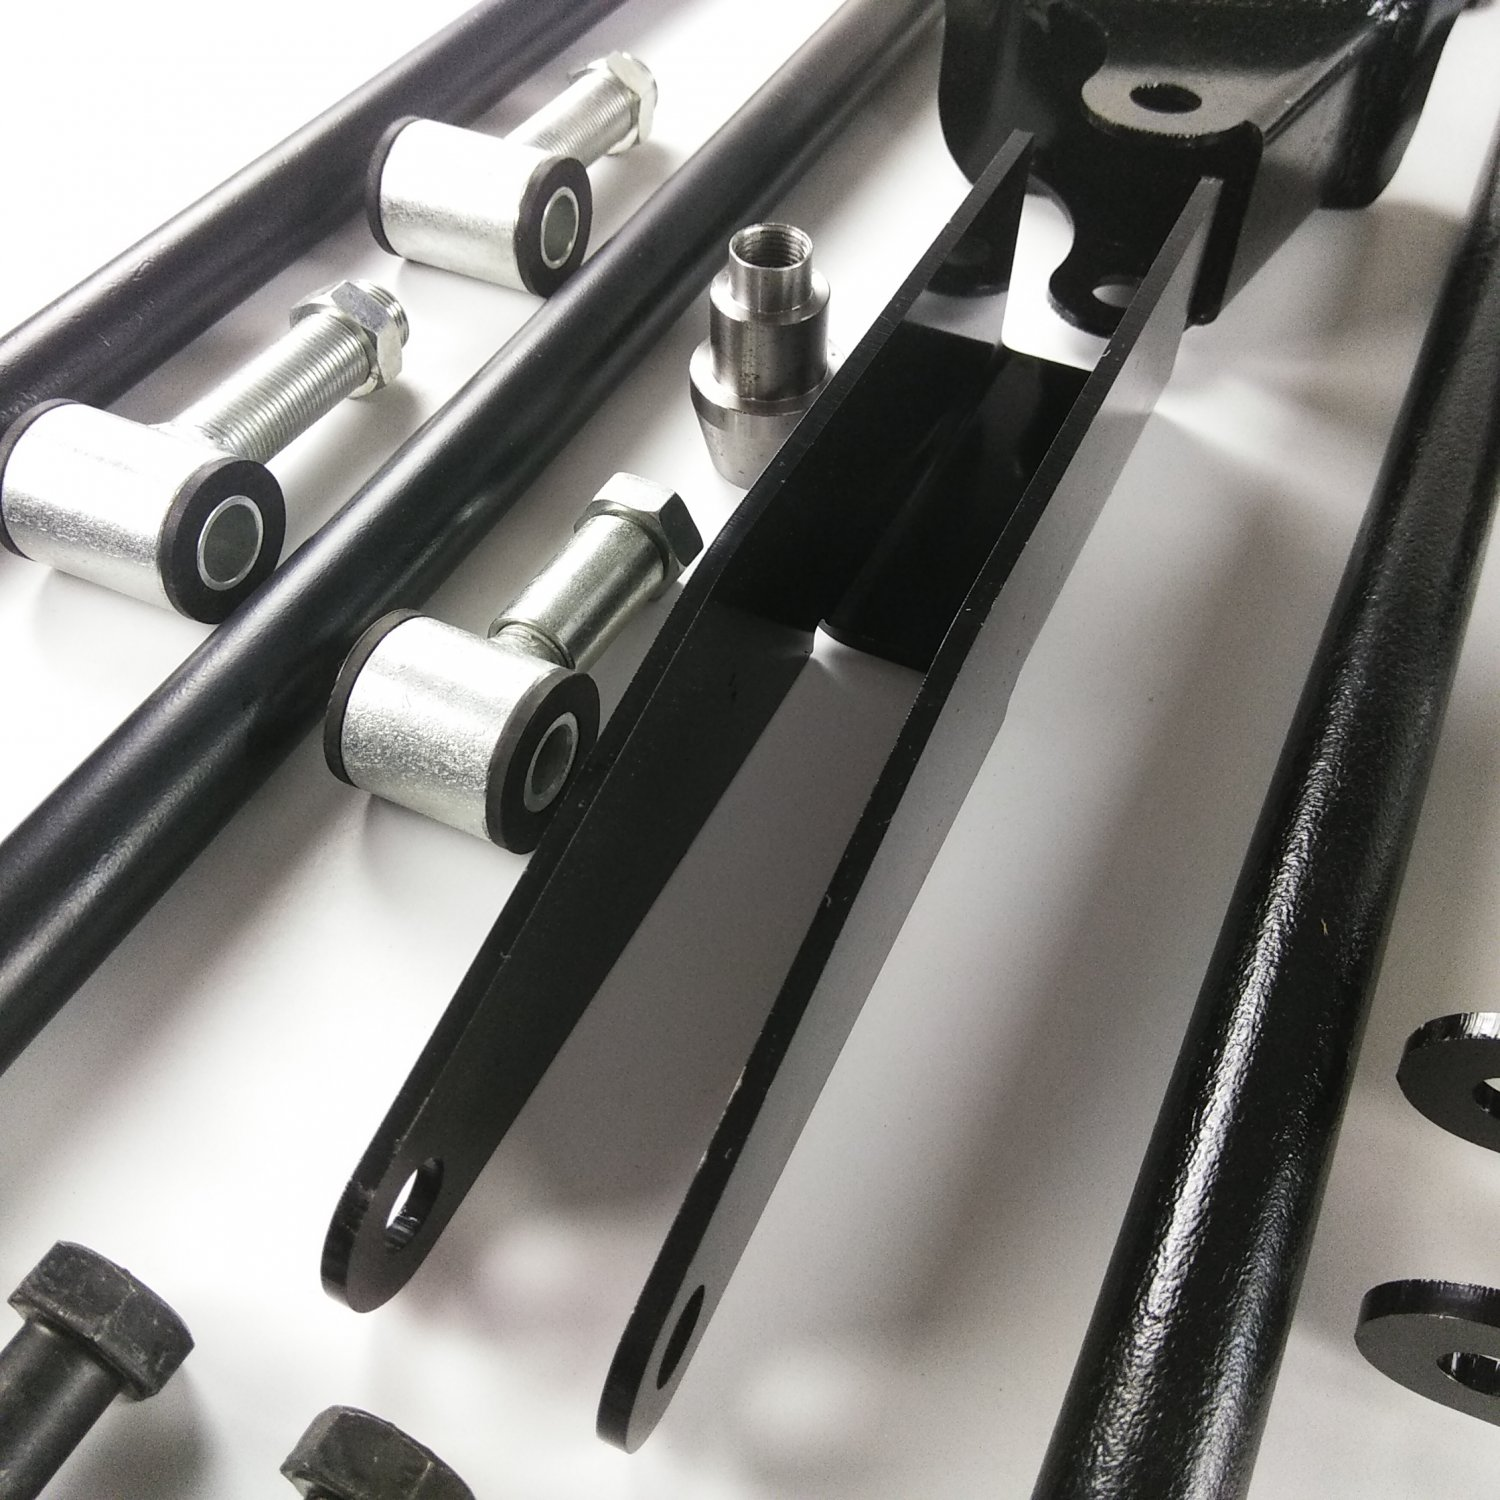 Details about Parallel Rear Suspension Four 4 Link Kit for 49-64 Studebaker  fits coilovers